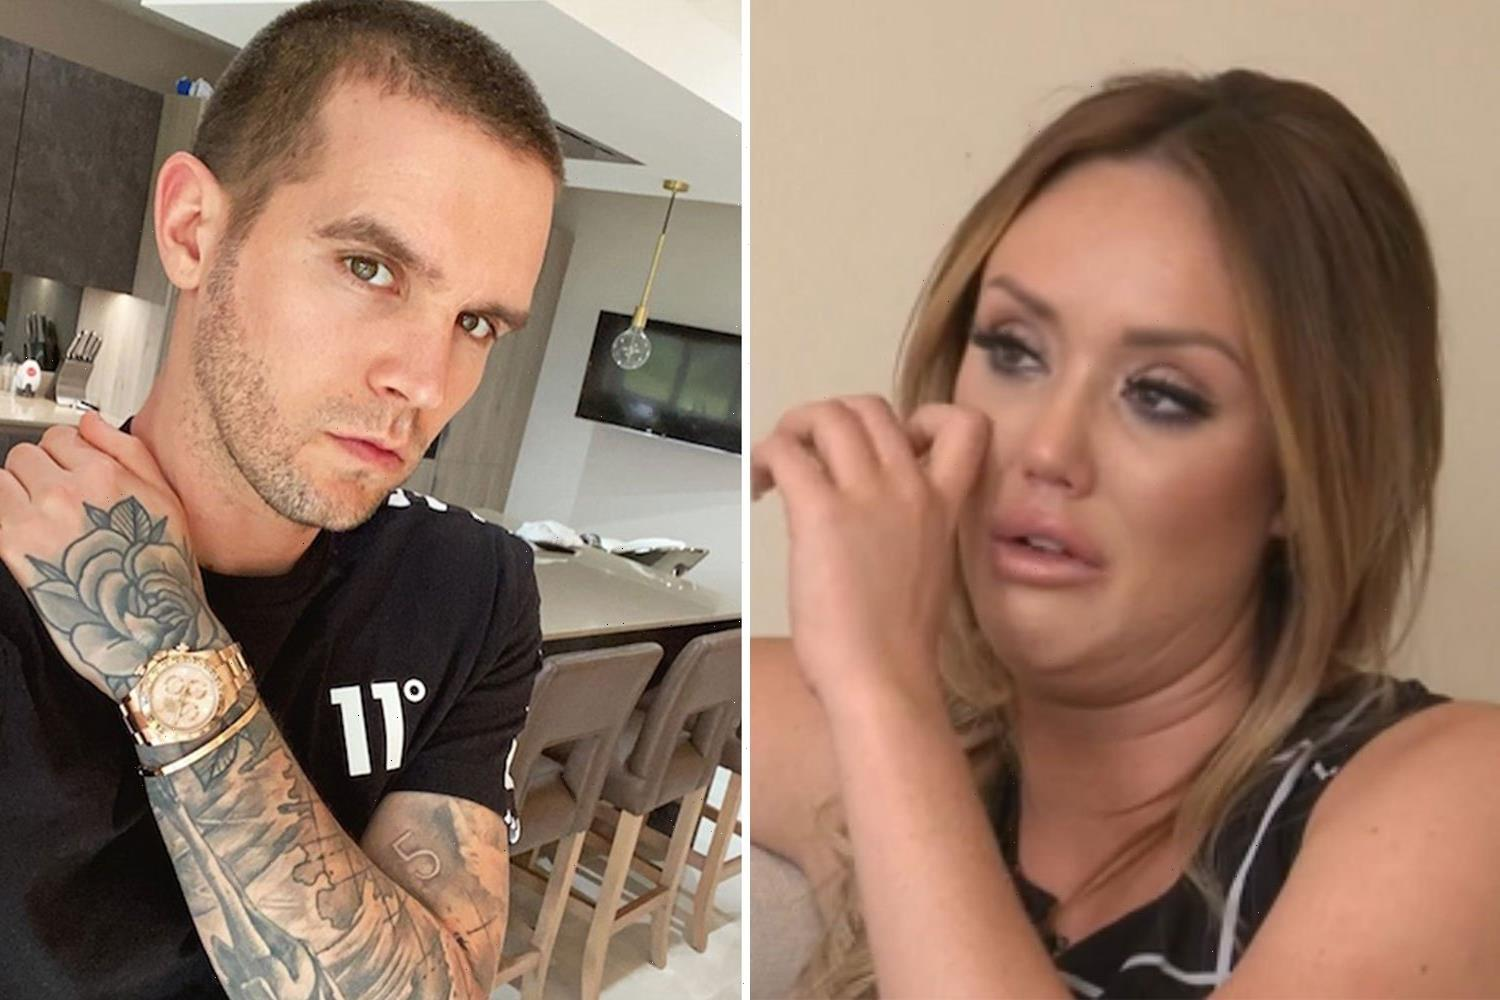 Charlotte Crosby brands Gaz Beadle the 'biggest idiot' and claims he was her 'worst' boyfriend EVER on her birthday